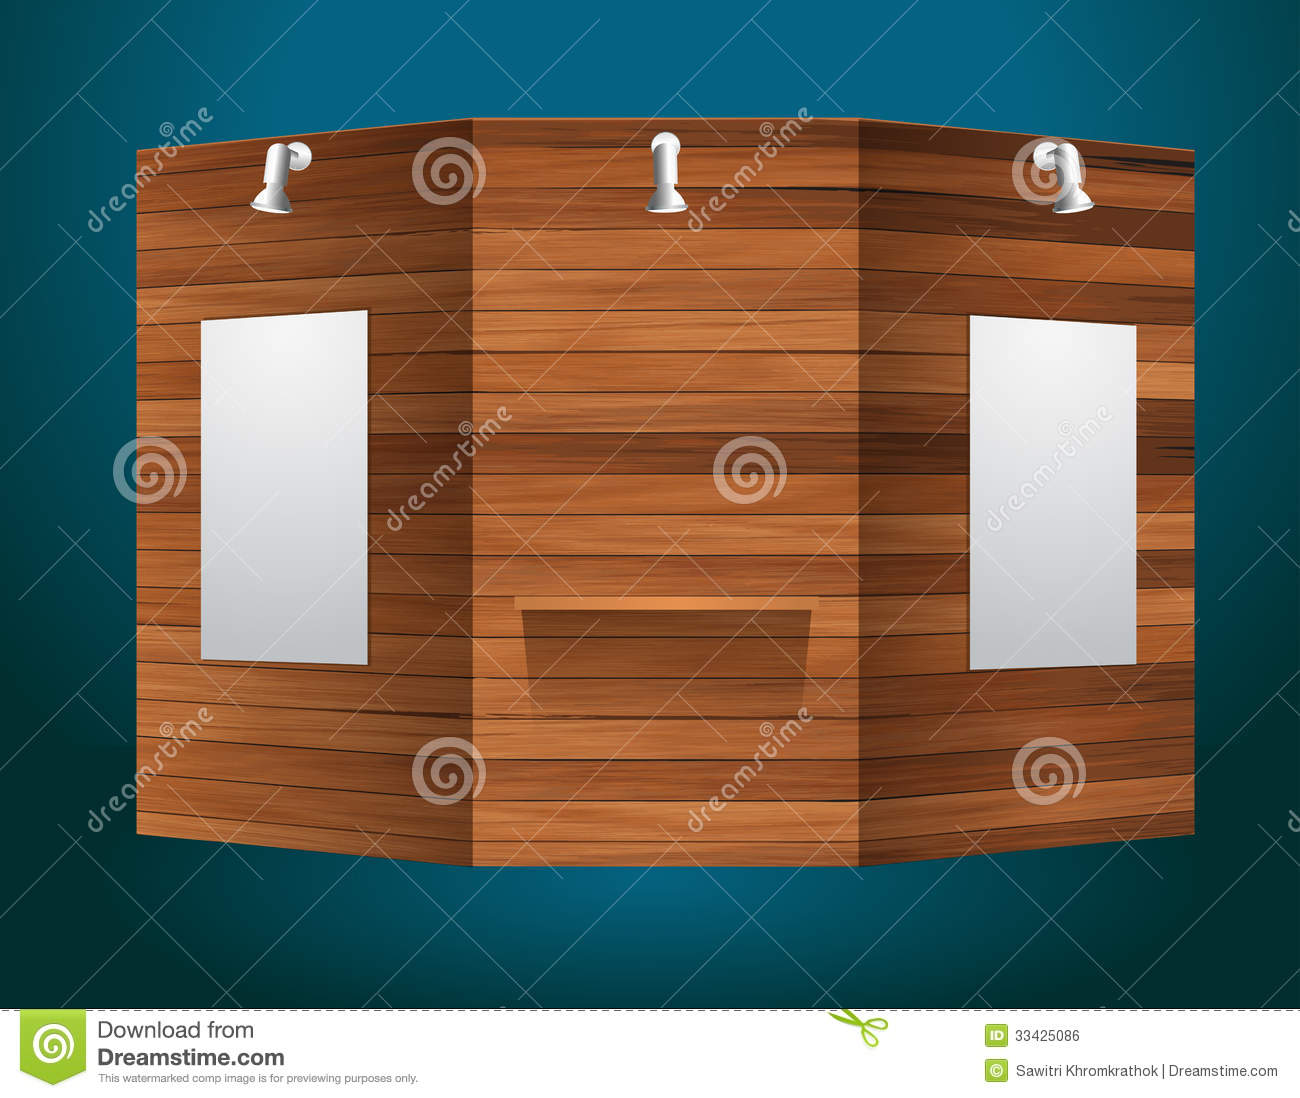 Exhibition Stand Design Illustrator : Vector exhibition stand with wood texture stock